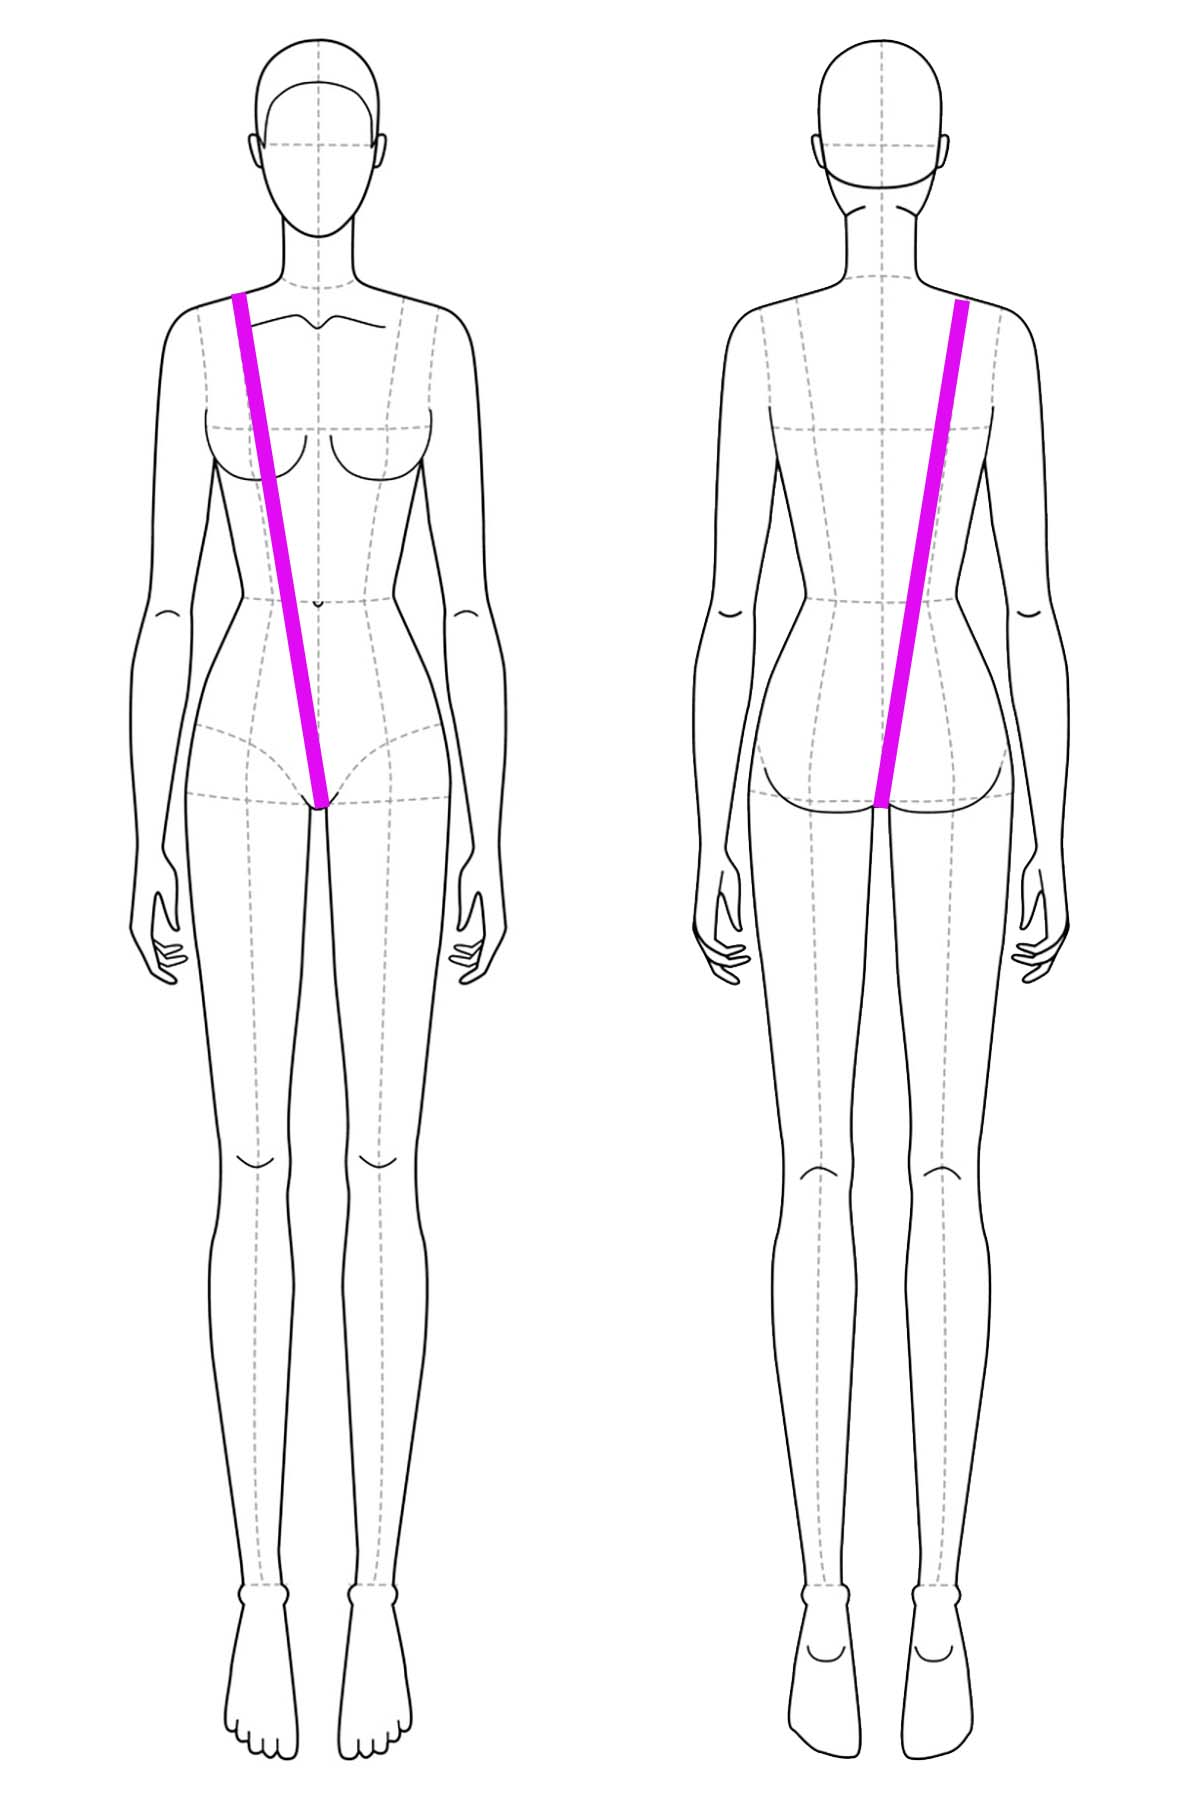 A set of line drawings of a female body, front and back views. Bright pink lines are drawn across it to indicate girth measurement.